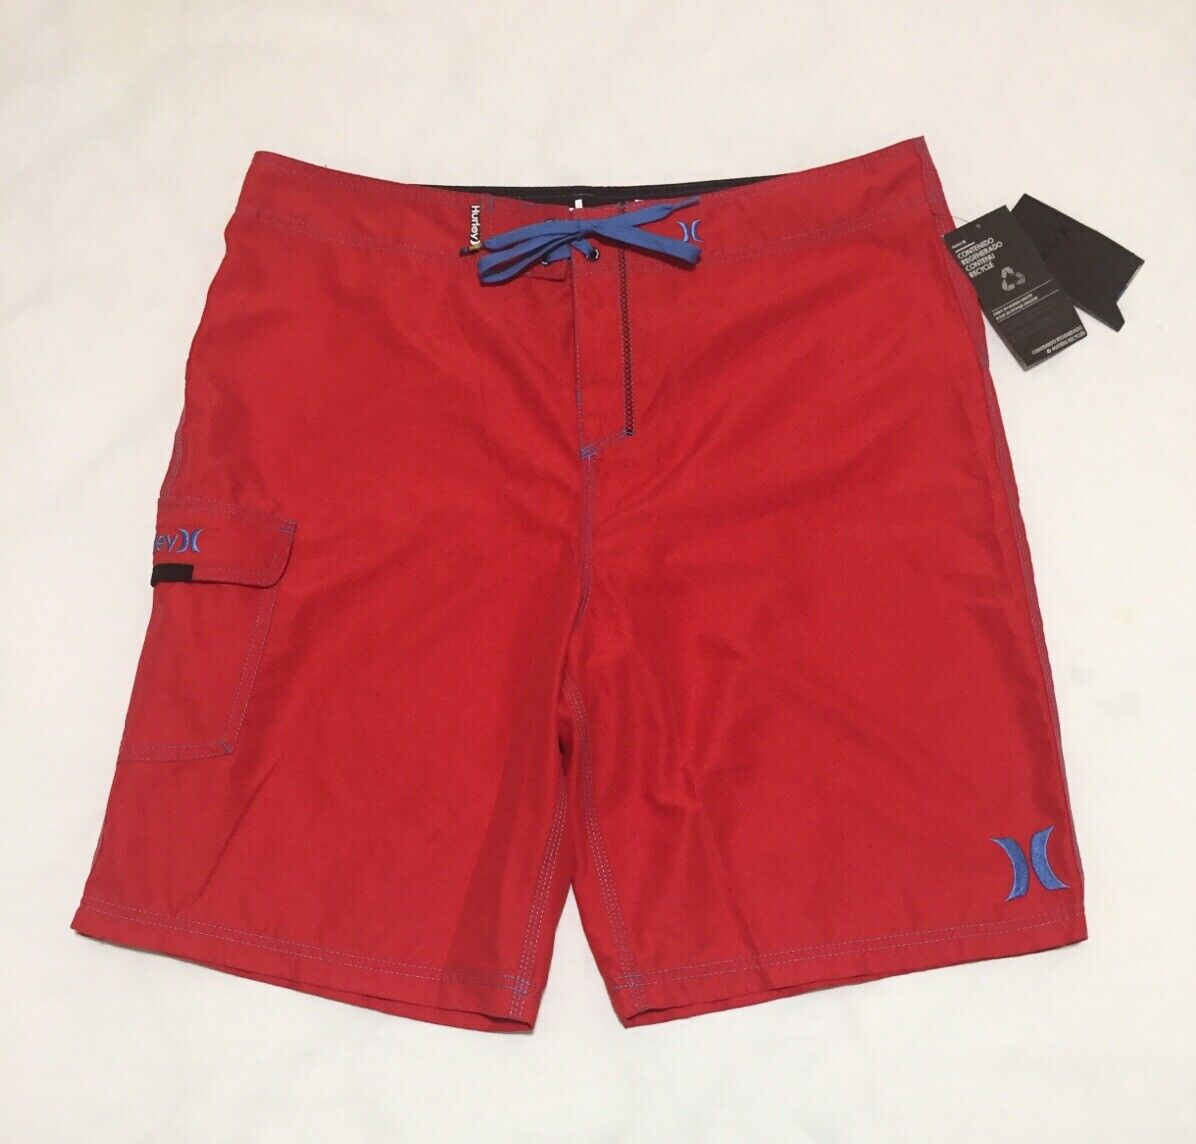 """Hurley Mens 38 One And Only 22"""" Swim Trunks Board Shorts Red"""